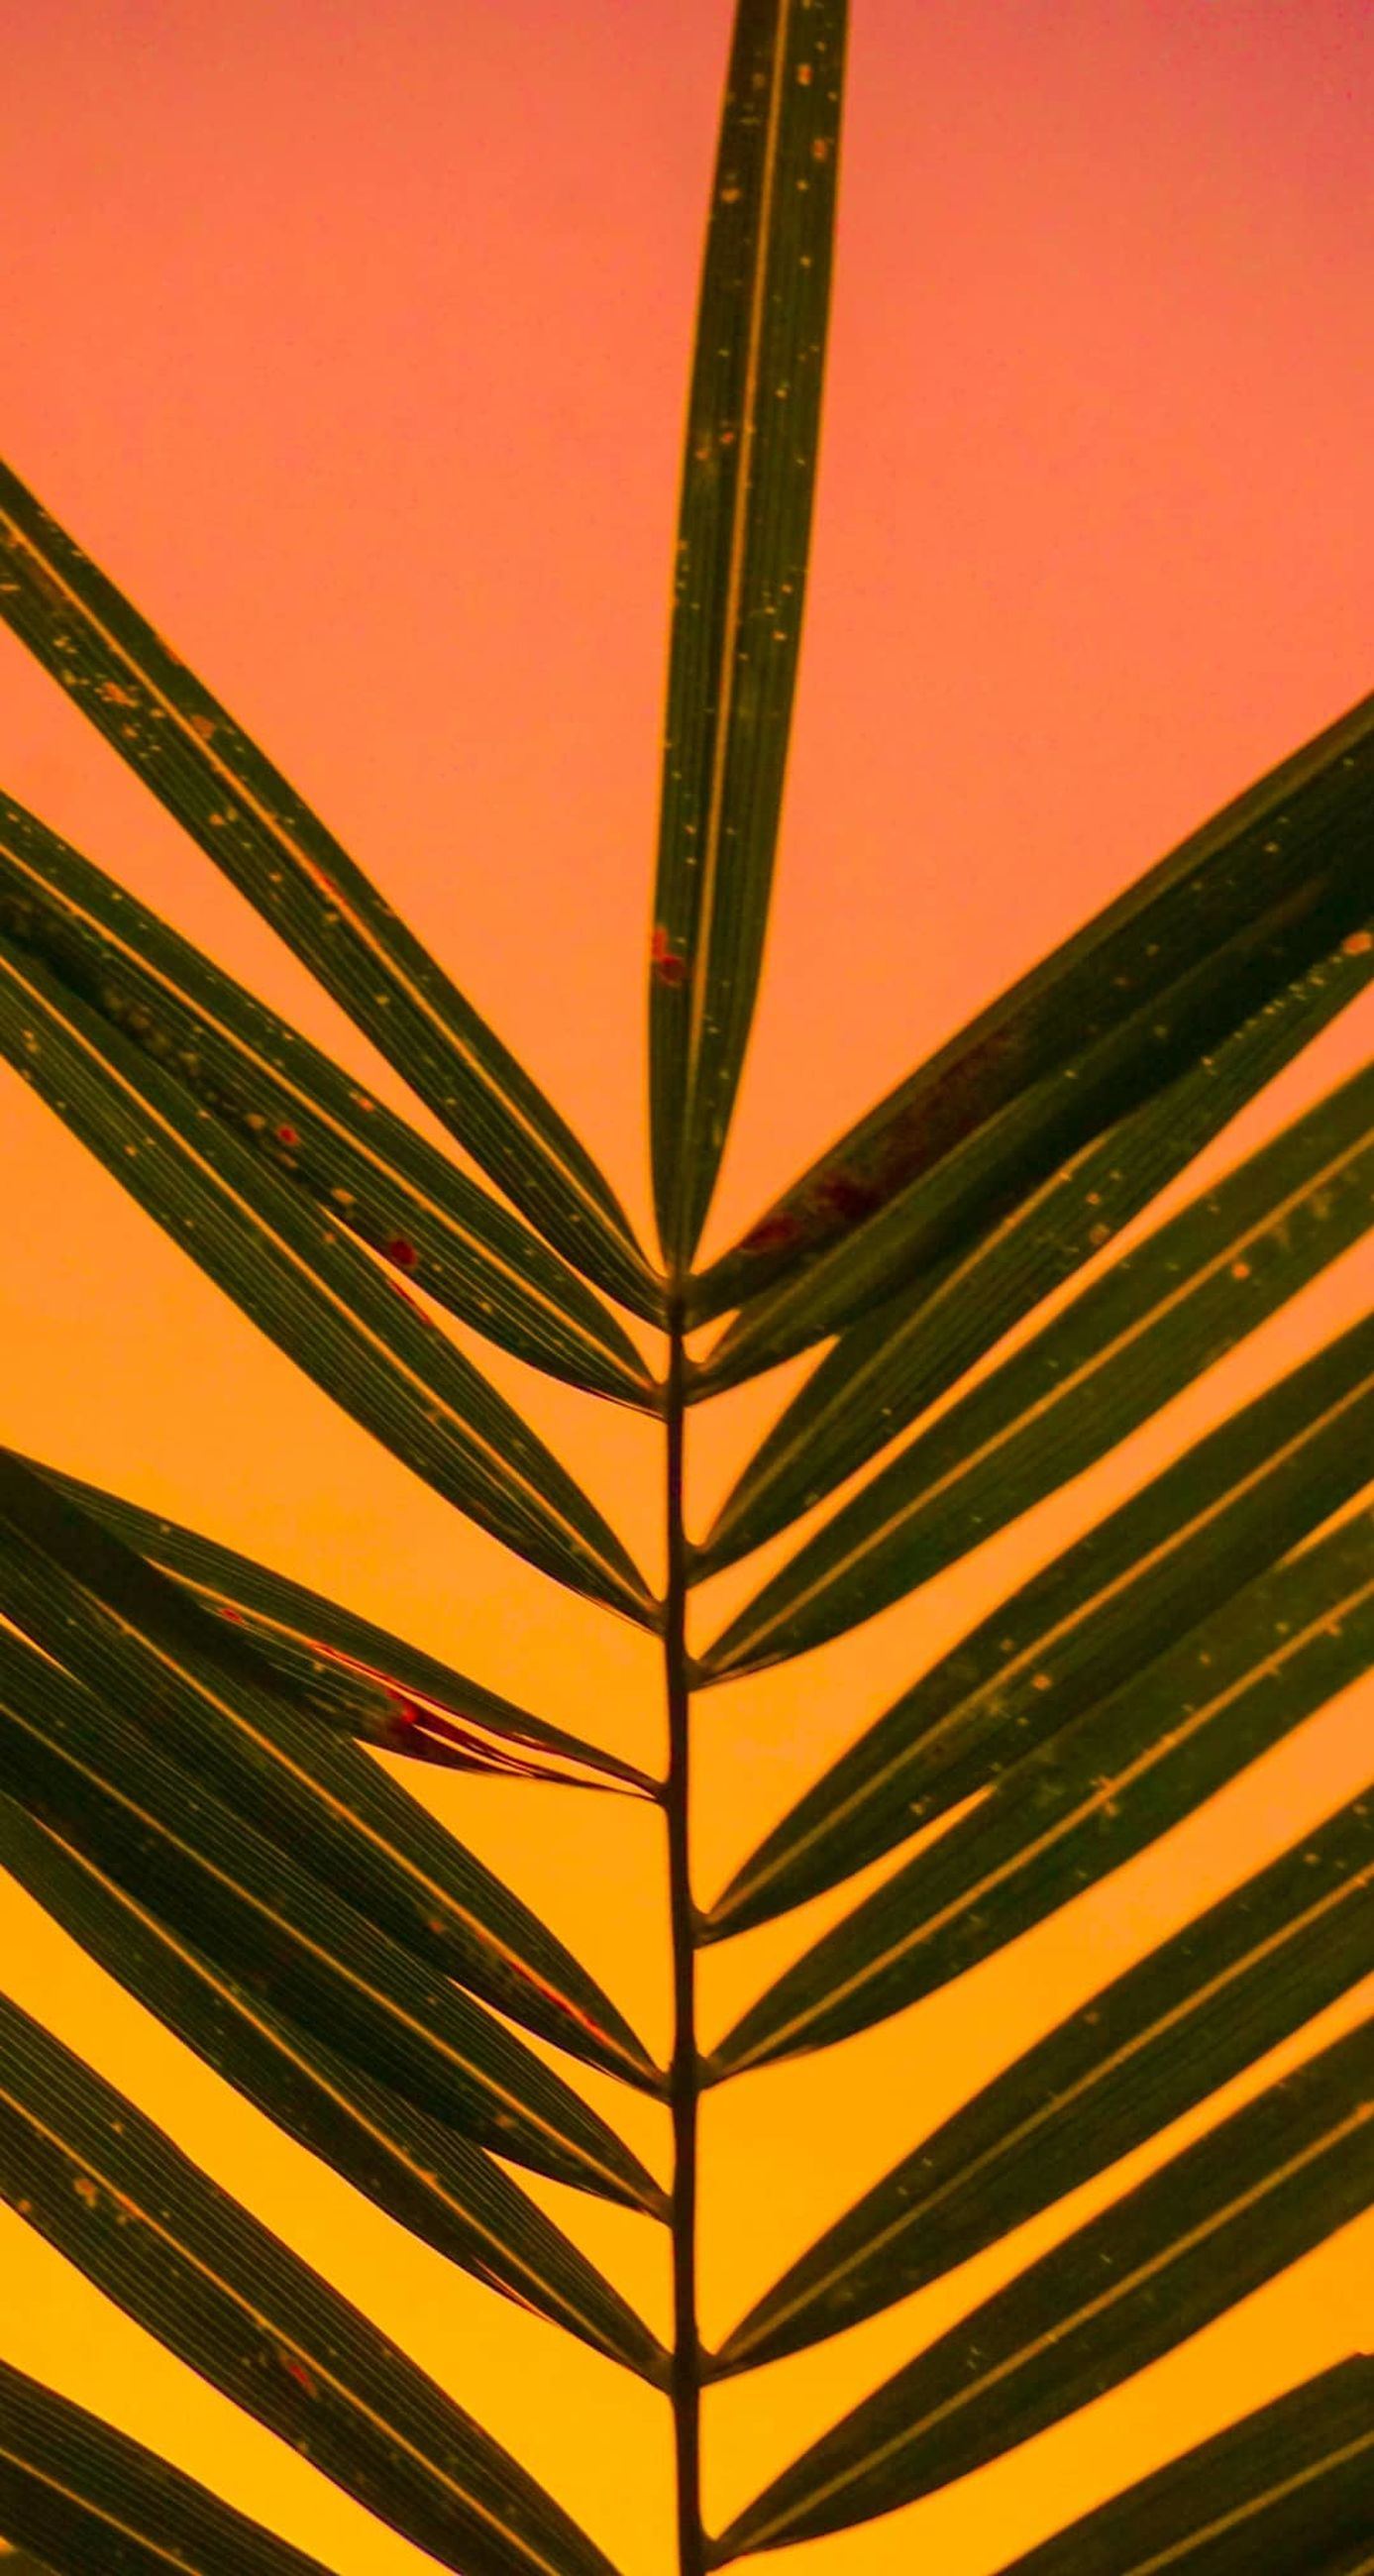 leaf, plant part, close-up, no people, plant, growth, palm tree, palm leaf, colored background, nature, studio shot, backgrounds, outdoors, beauty in nature, tropical climate, yellow, pattern, full frame, single object, orange background